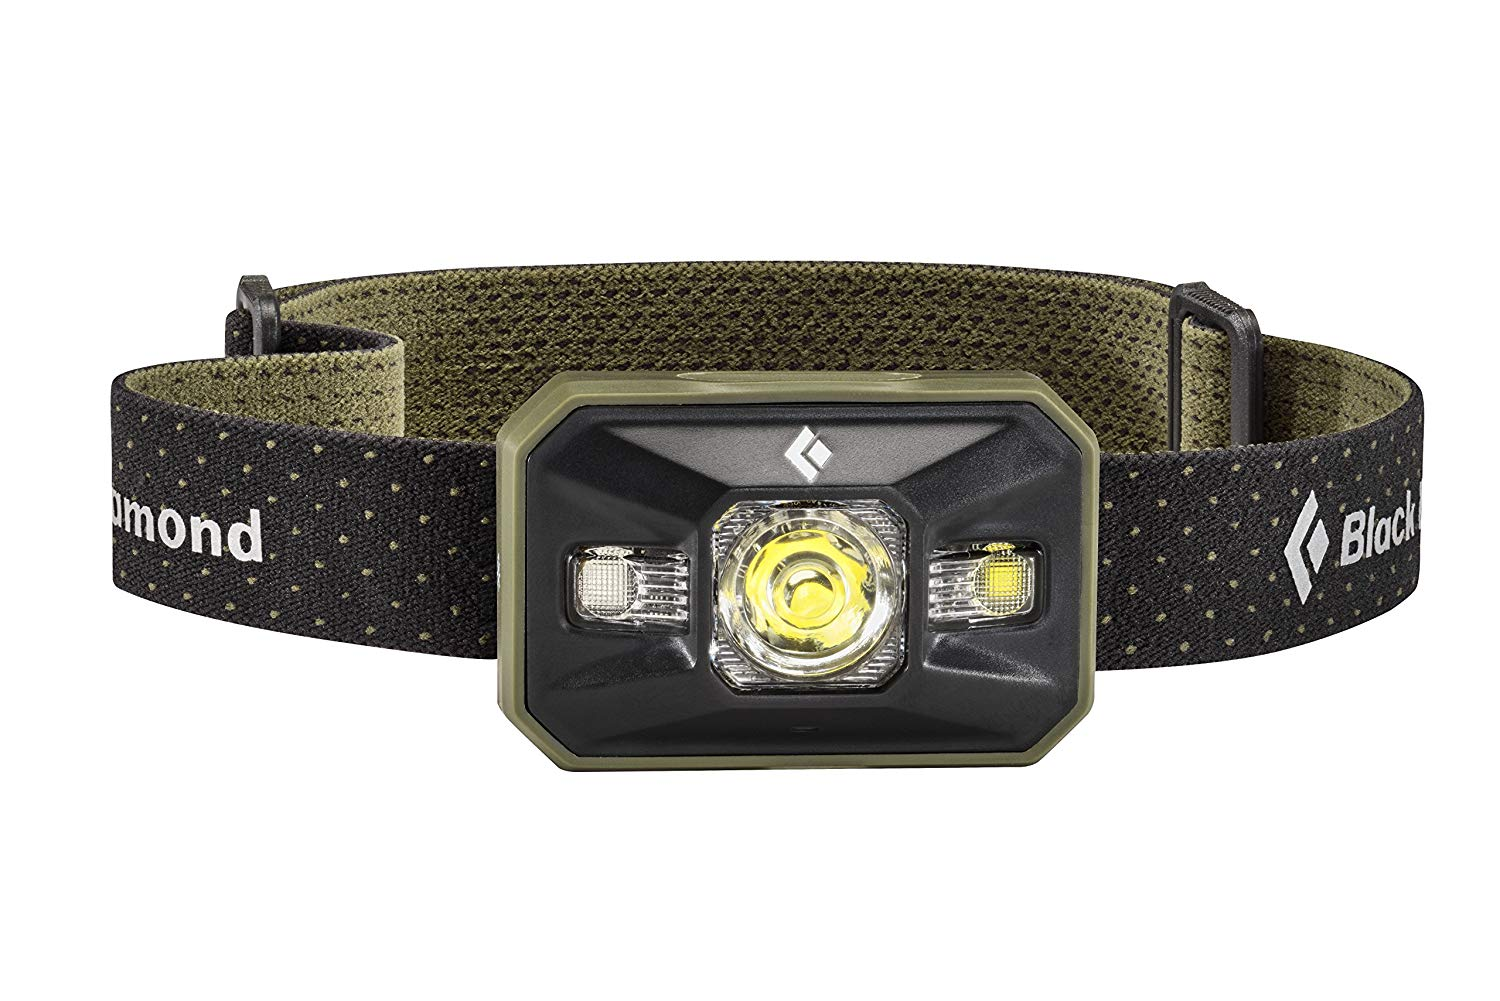 Top 10 Best Headlamps For Hunting & Fishing 2020 Reviews 4